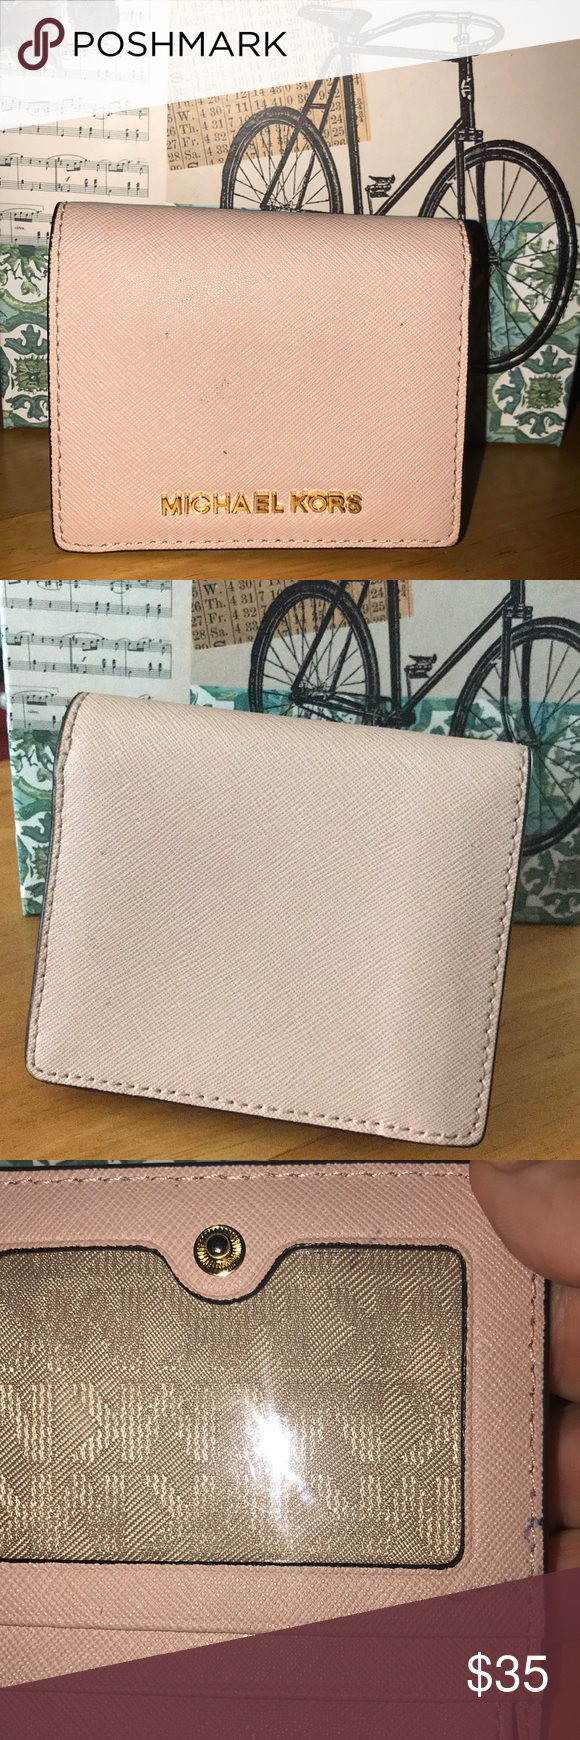 6ff6b9b21eeb MK wallet Michael Kors Mercer Cooper trifold wallet in a peachy beige tone.  Authentic and used. Picture shows small ink stain on inside.